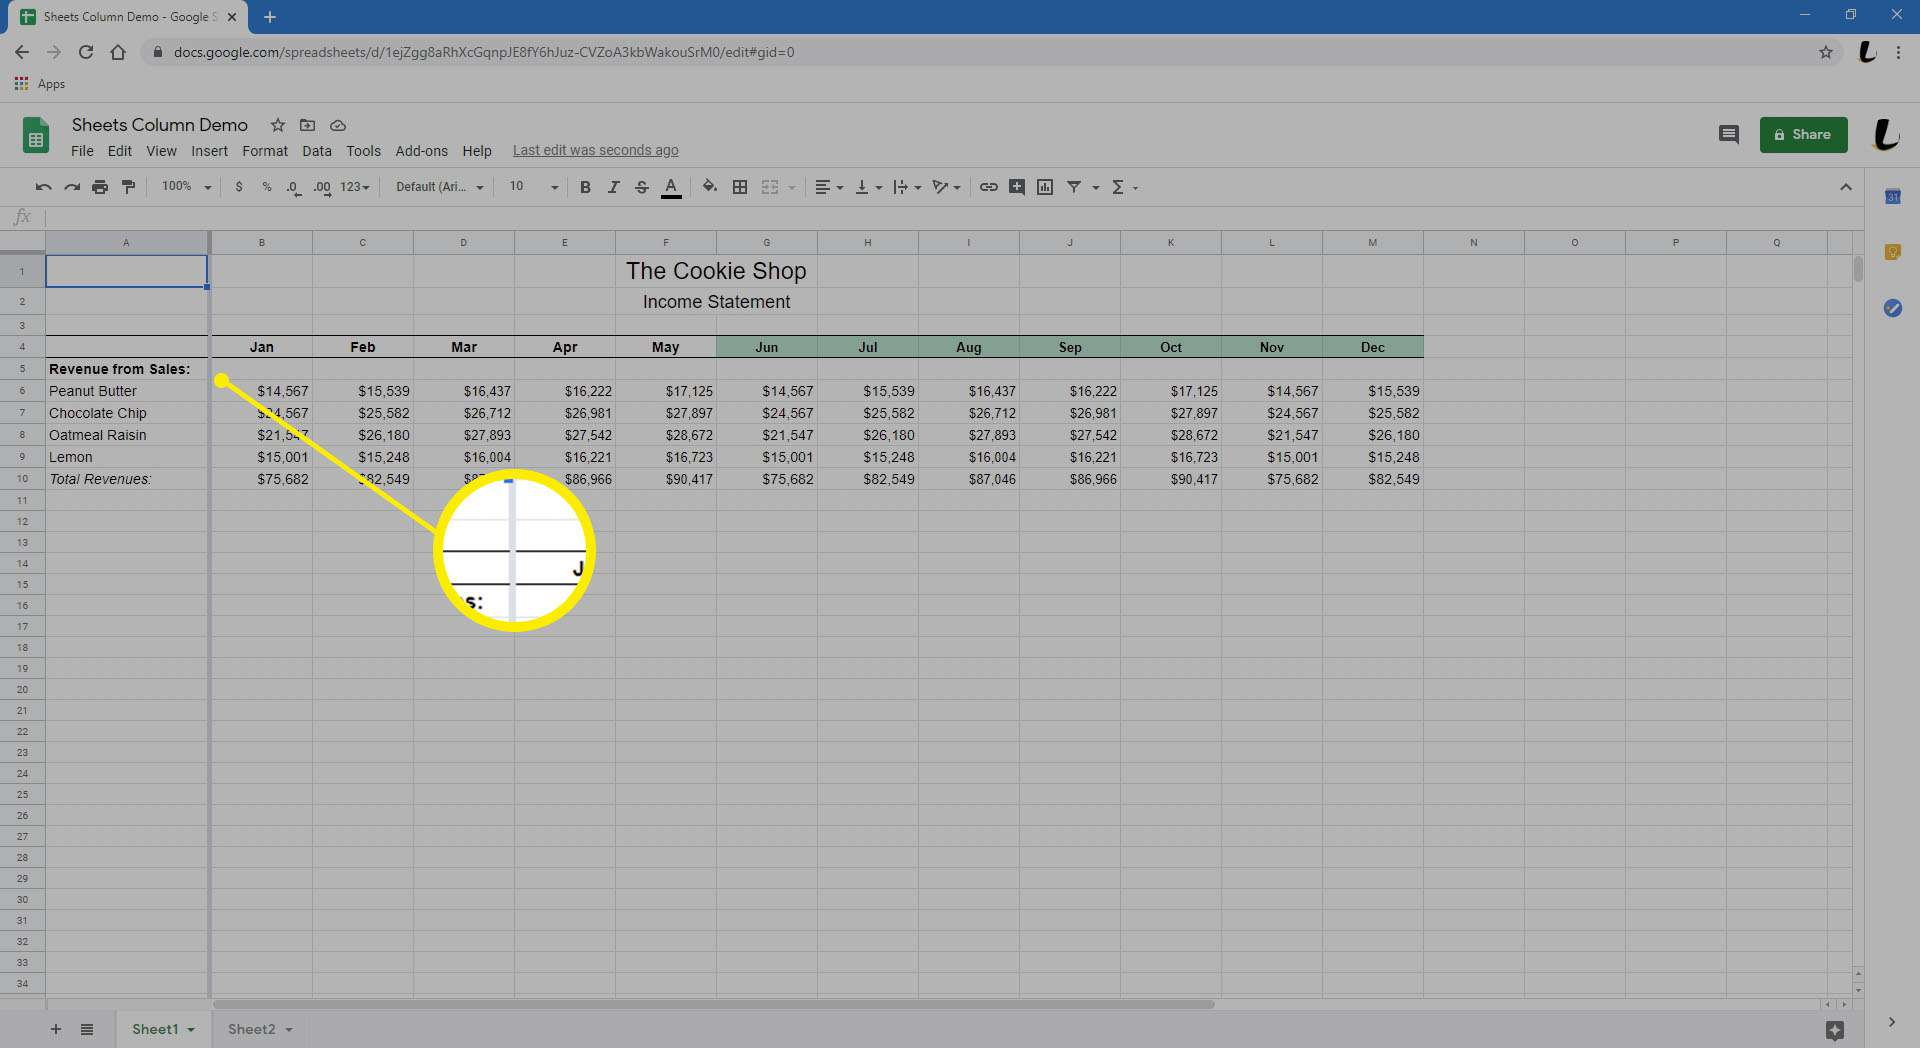 Google Sheets is showing a spreadsheet with the initial column frozen.